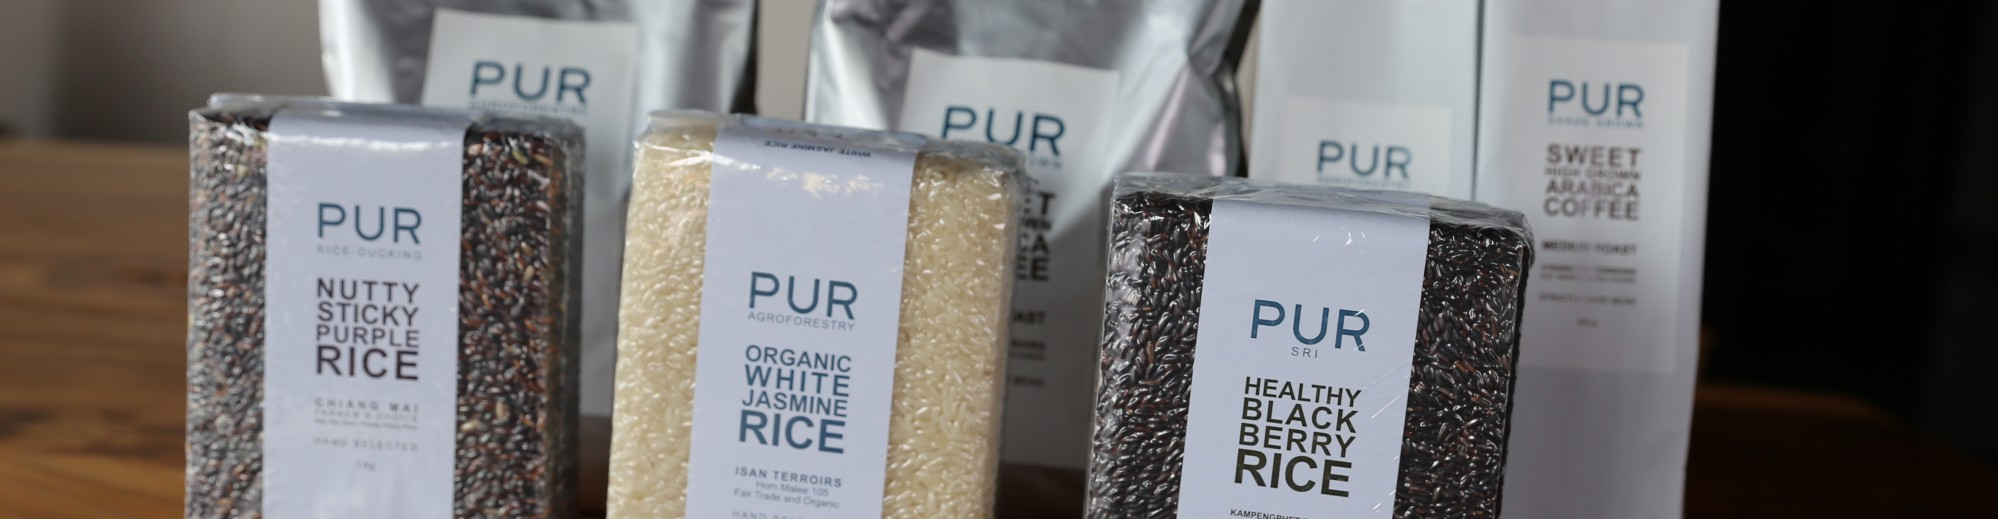 purproducts